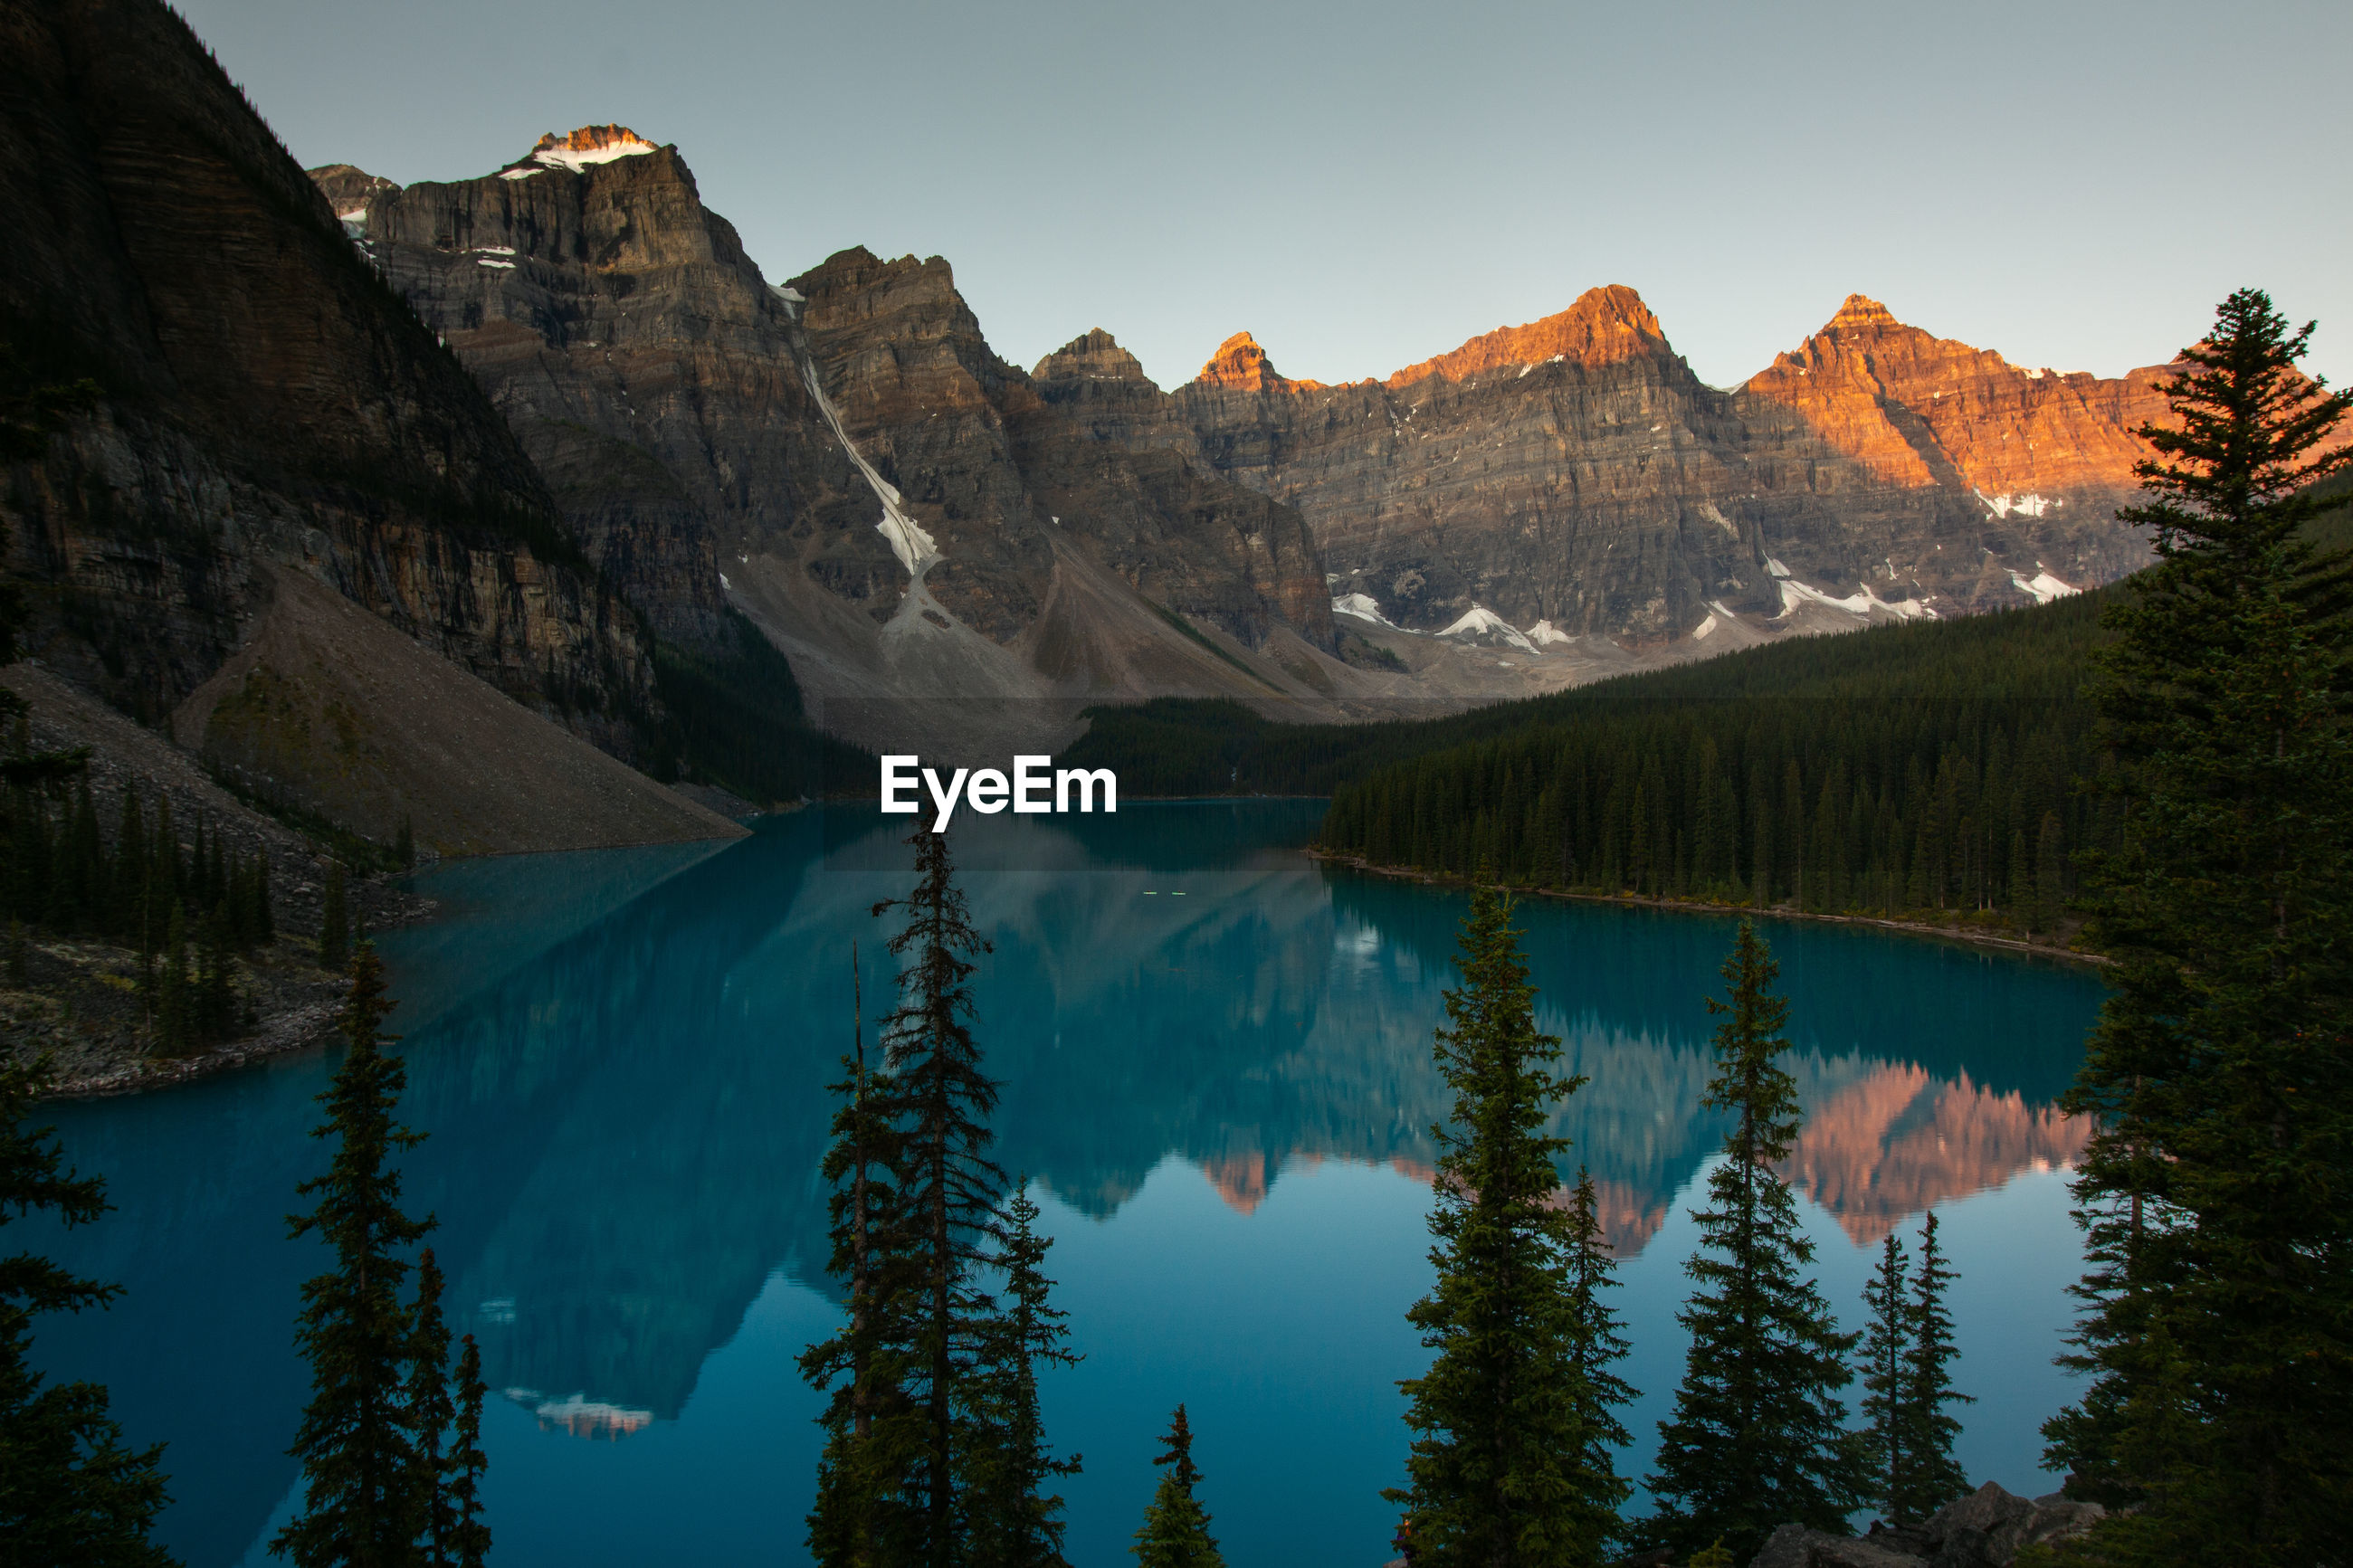 Scenic view of lake and mountains against clear sky during sunset